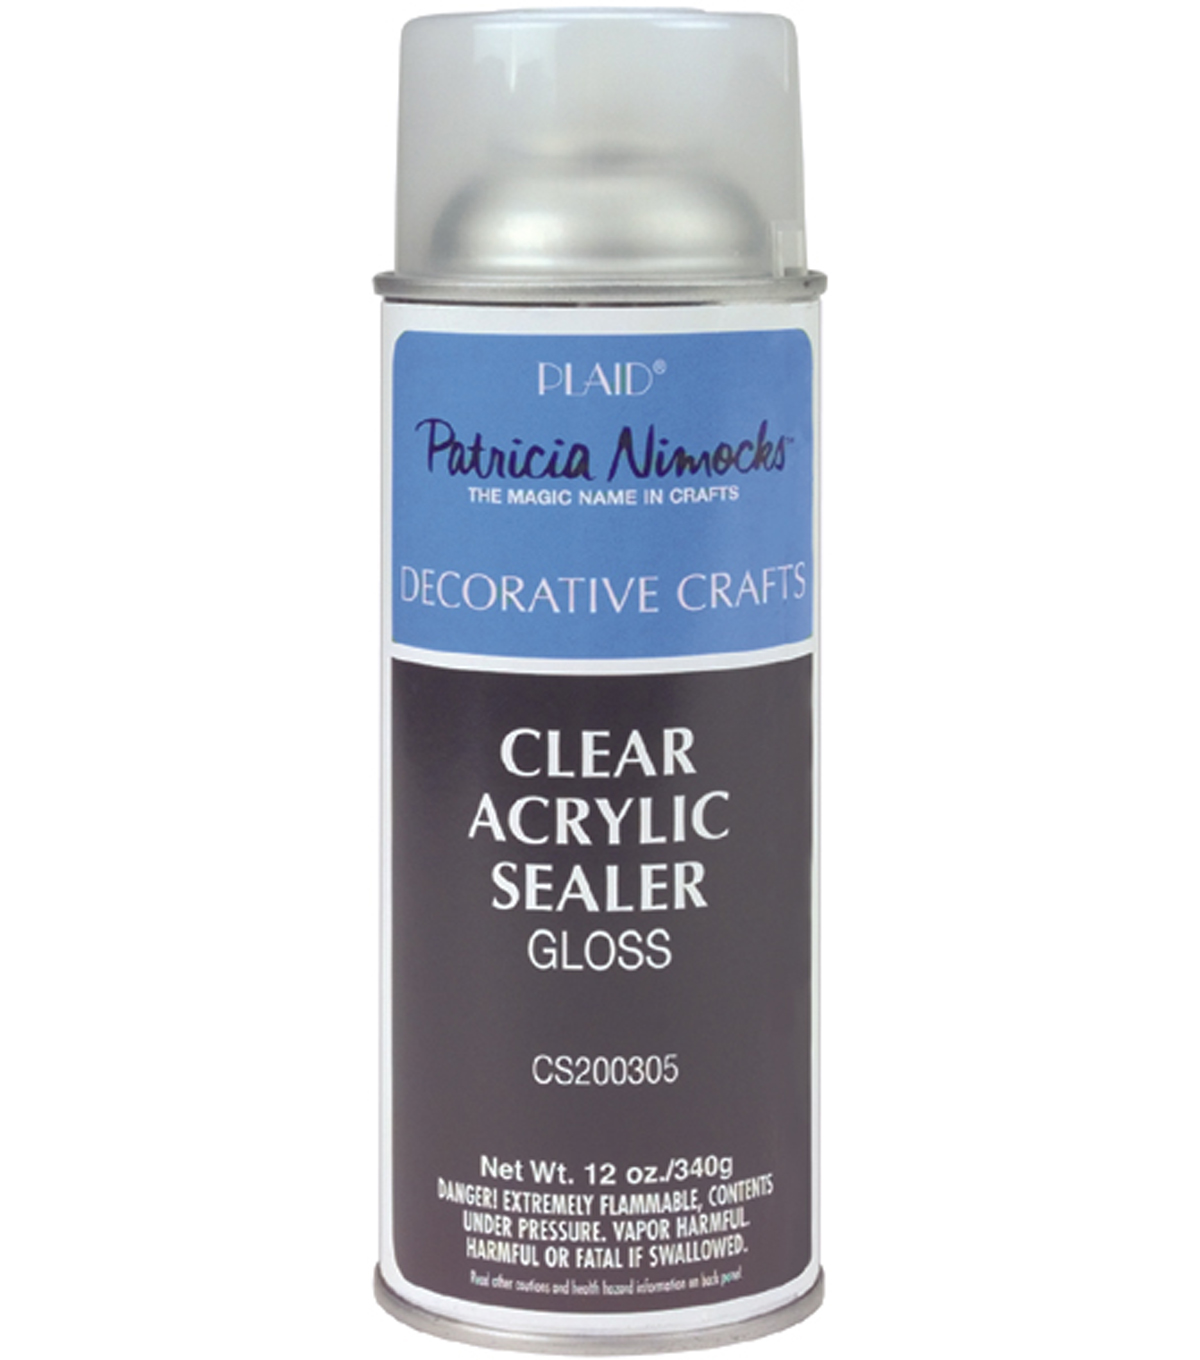 Plaid Clear Acrylic Sealer-Gloss/Matte 12 oz